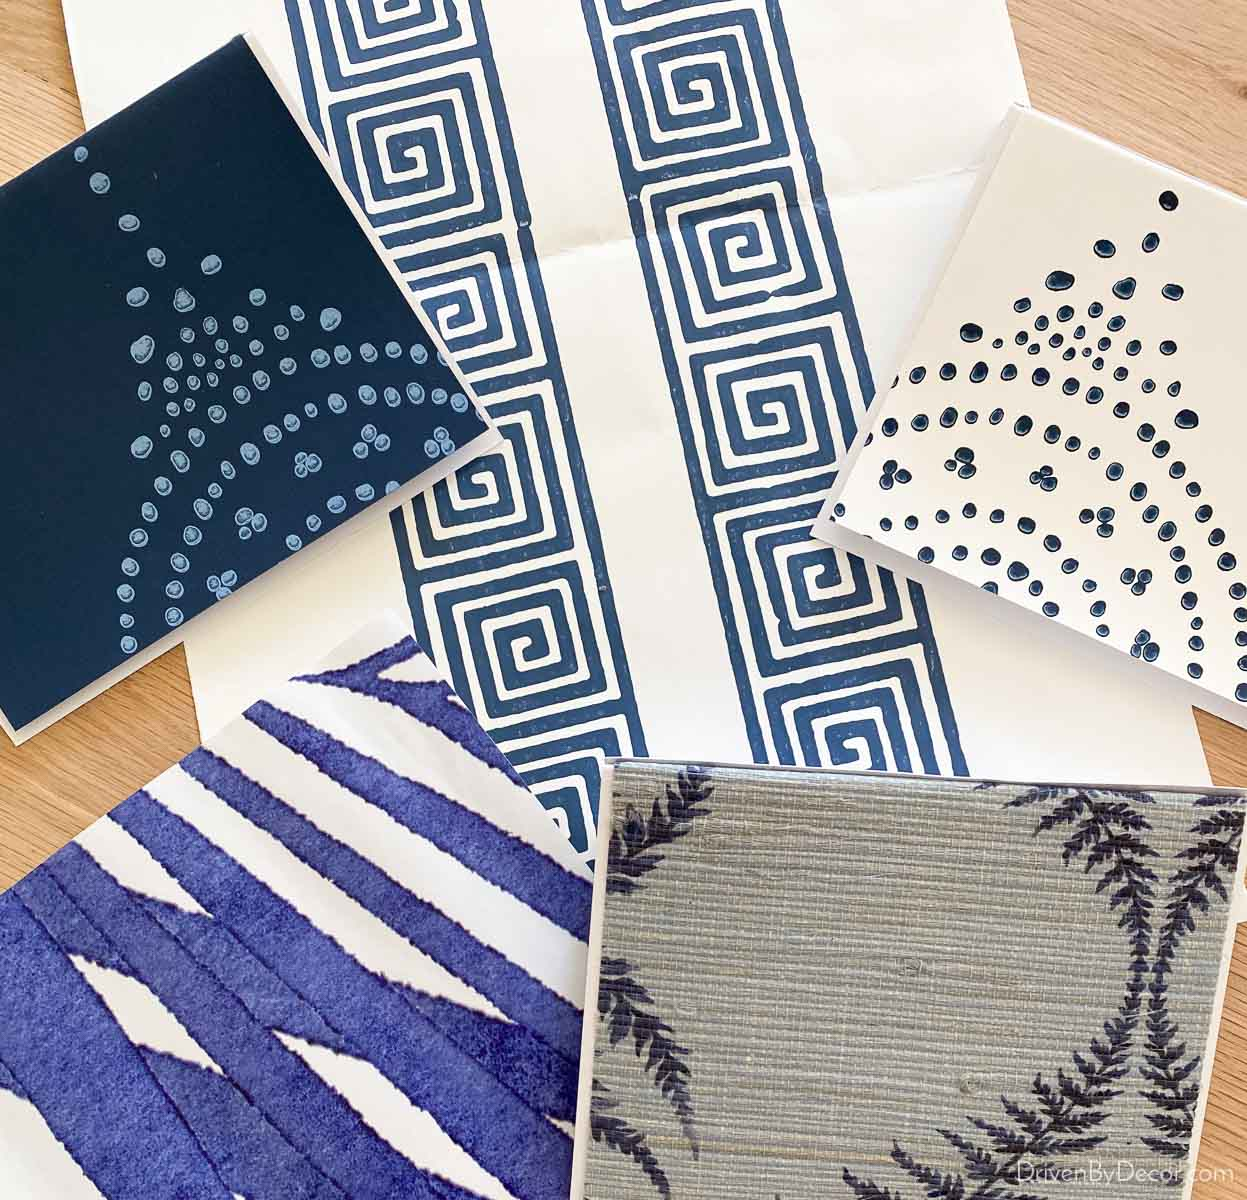 Wallpaper samples that I'll be using to create my own patterned coasters! Love this wallpaper idea!